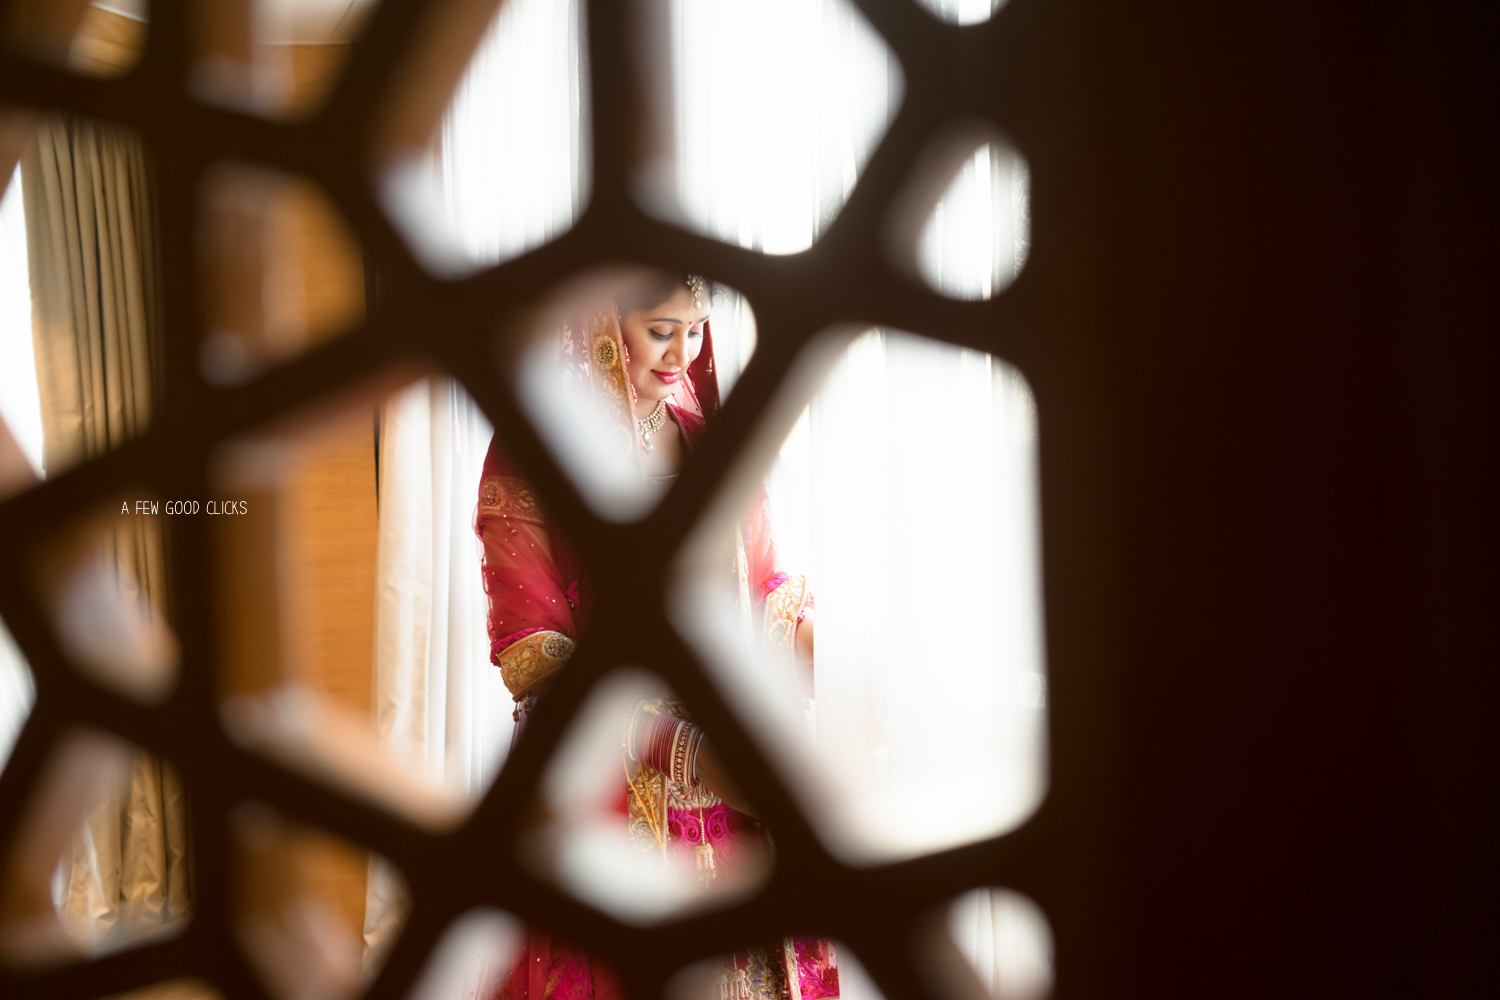 indian-bride-wedding-photography-by-afewgoodclicks-35.jpg